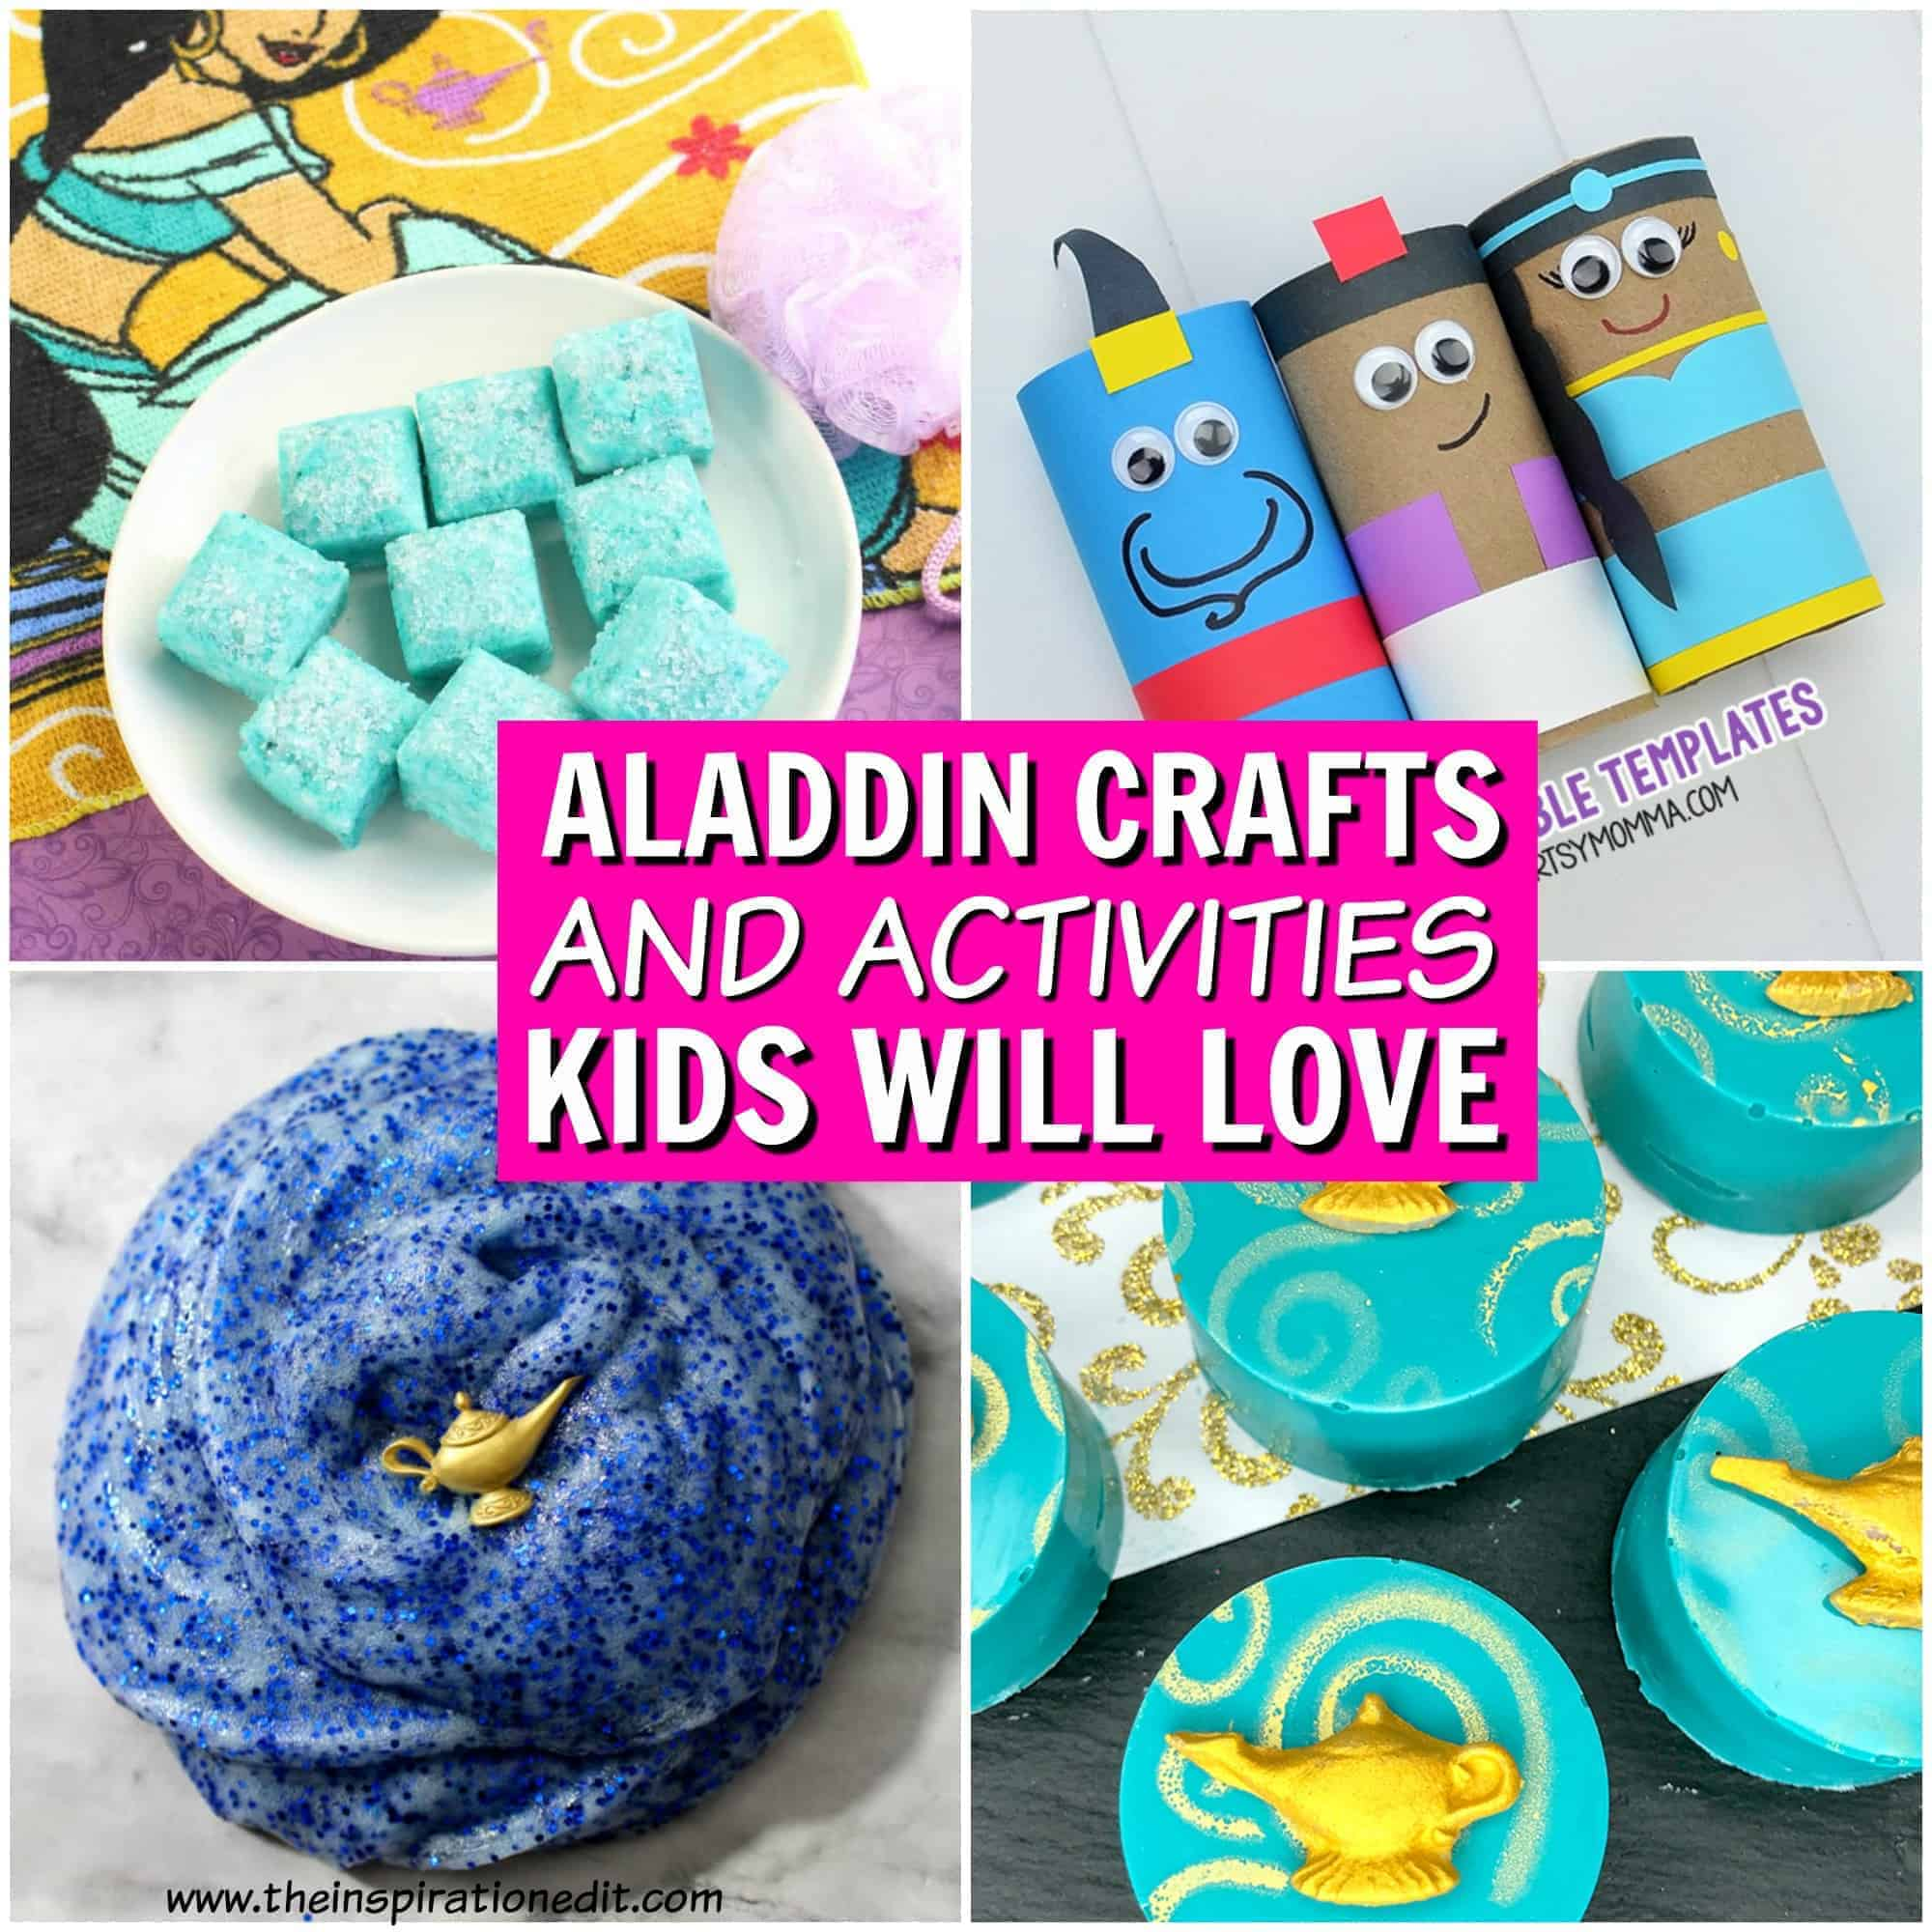 Aladdin crafts and Activities for kids